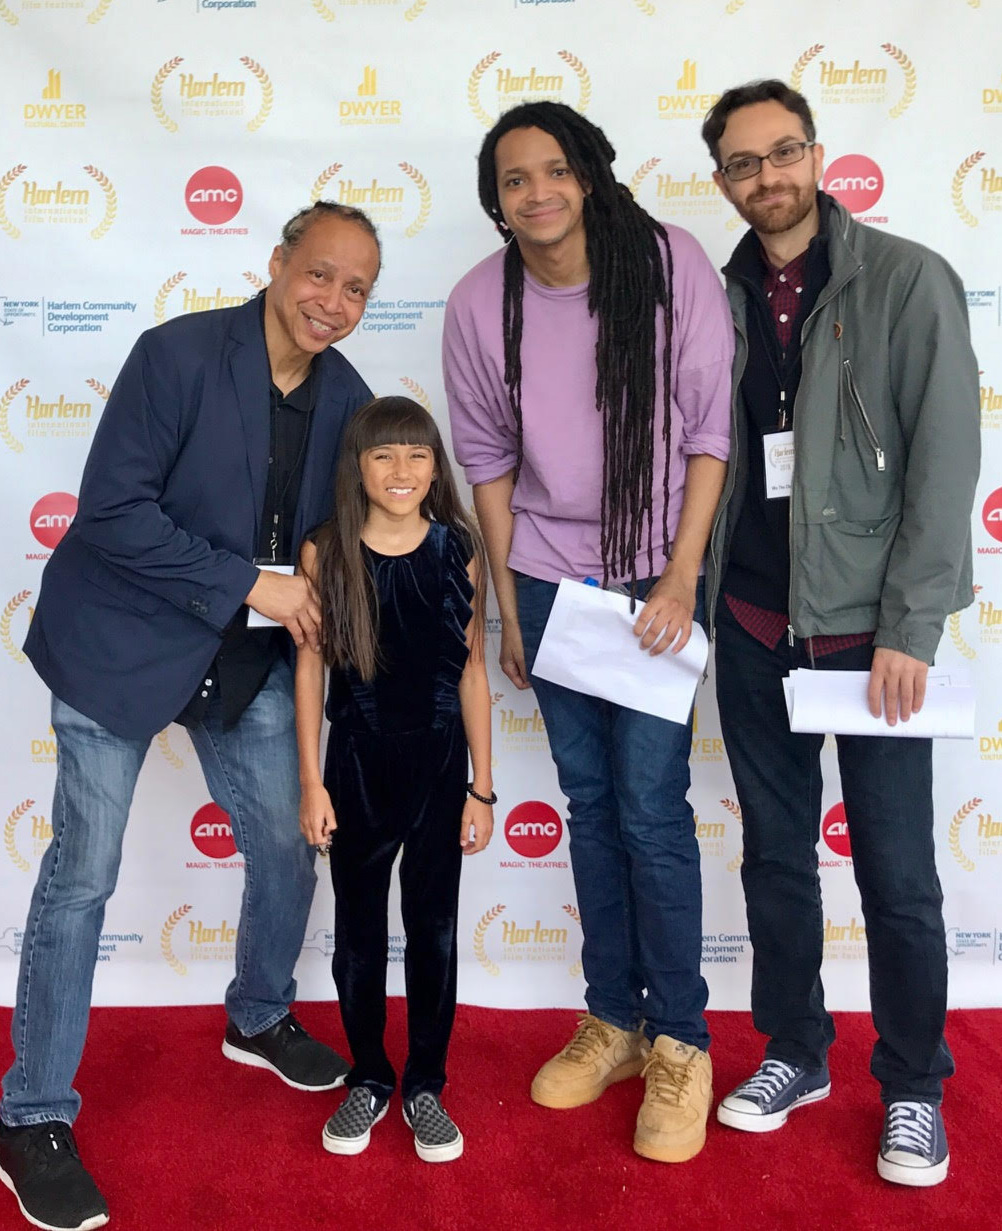 Directors Jamal Joseph & Mike De Caro, co-coproducer Jad Joseph, and Kate, one of the little stars of the doc.